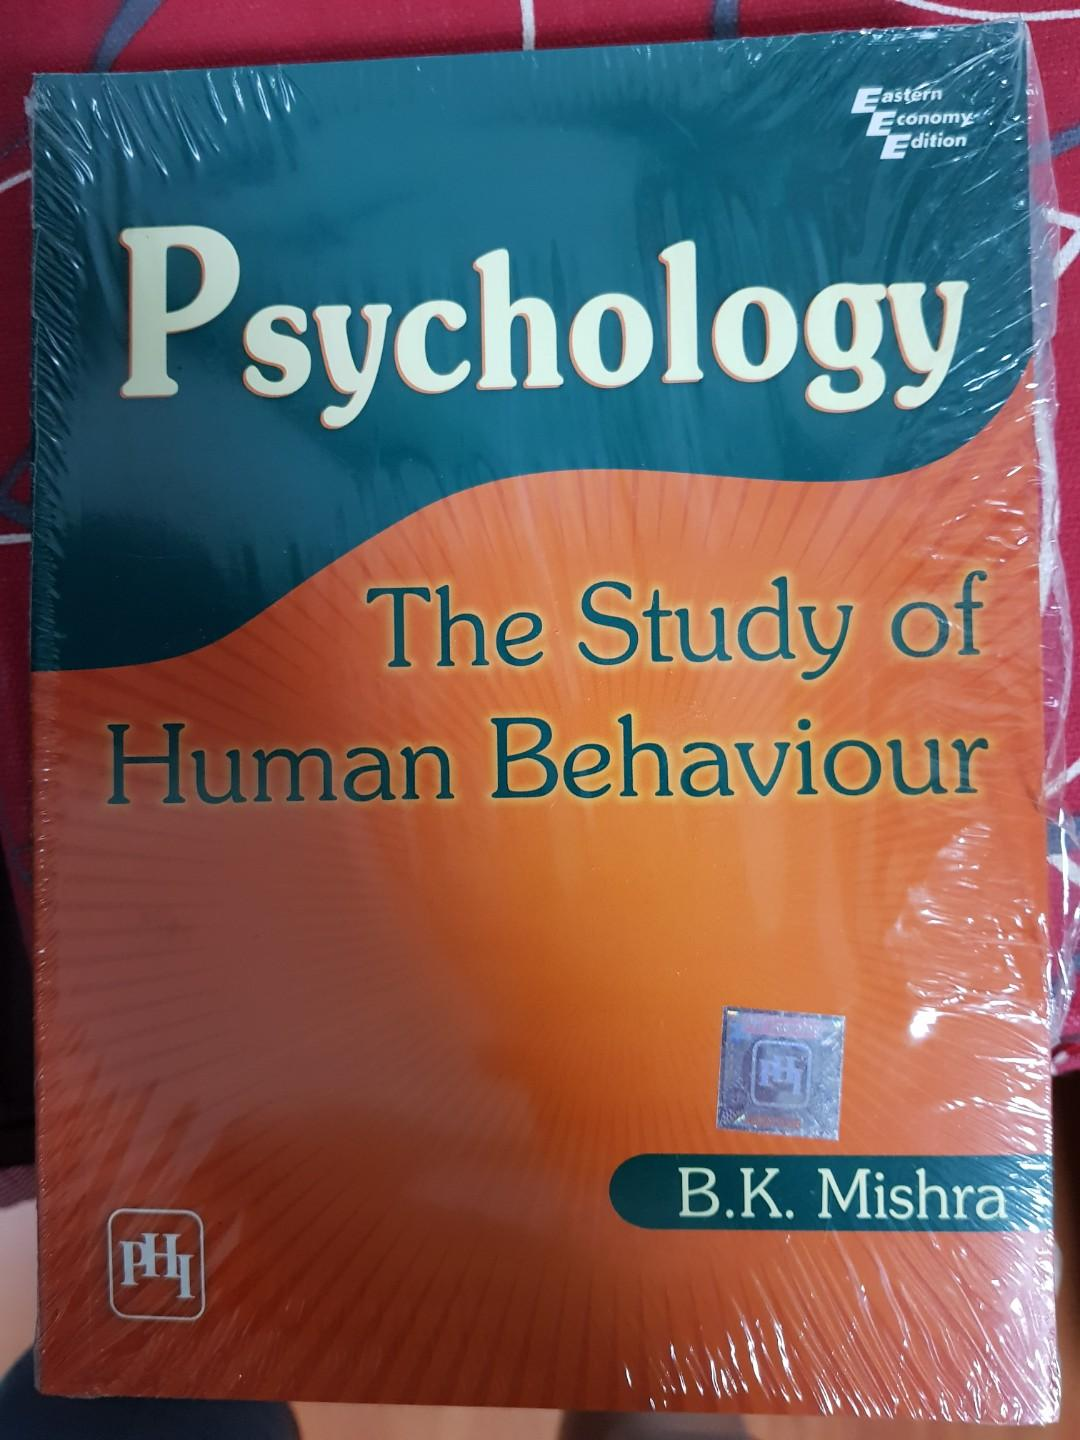 Psychology The Study Of Human Behaviour By B K Mishra Books Stationery Textbooks Tertiary On Carousell